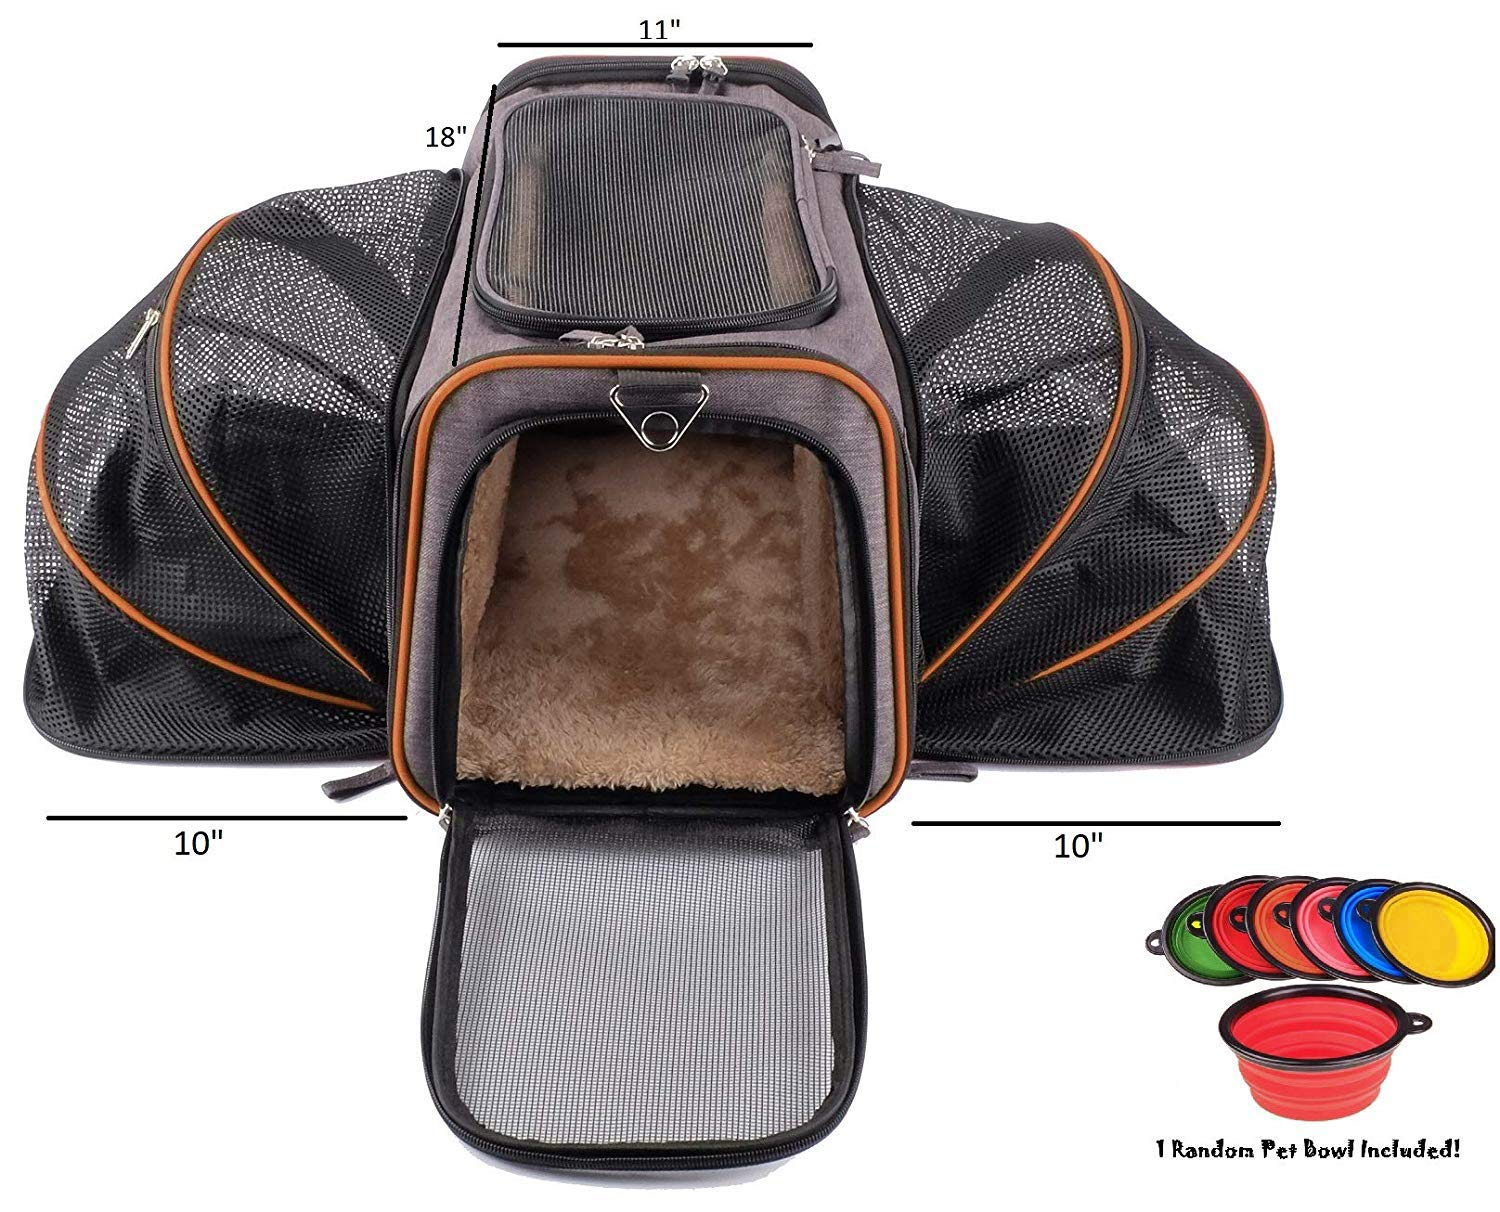 Petpeppy.com The Original Airline Approved Expandable Pet Carrier by Pet Peppy- Two Side Expansion, Designed for Cats, Dogs, Kittens,Puppies - Extra Spacious Soft Sided Carrier! (Black) by Petpeppy.com